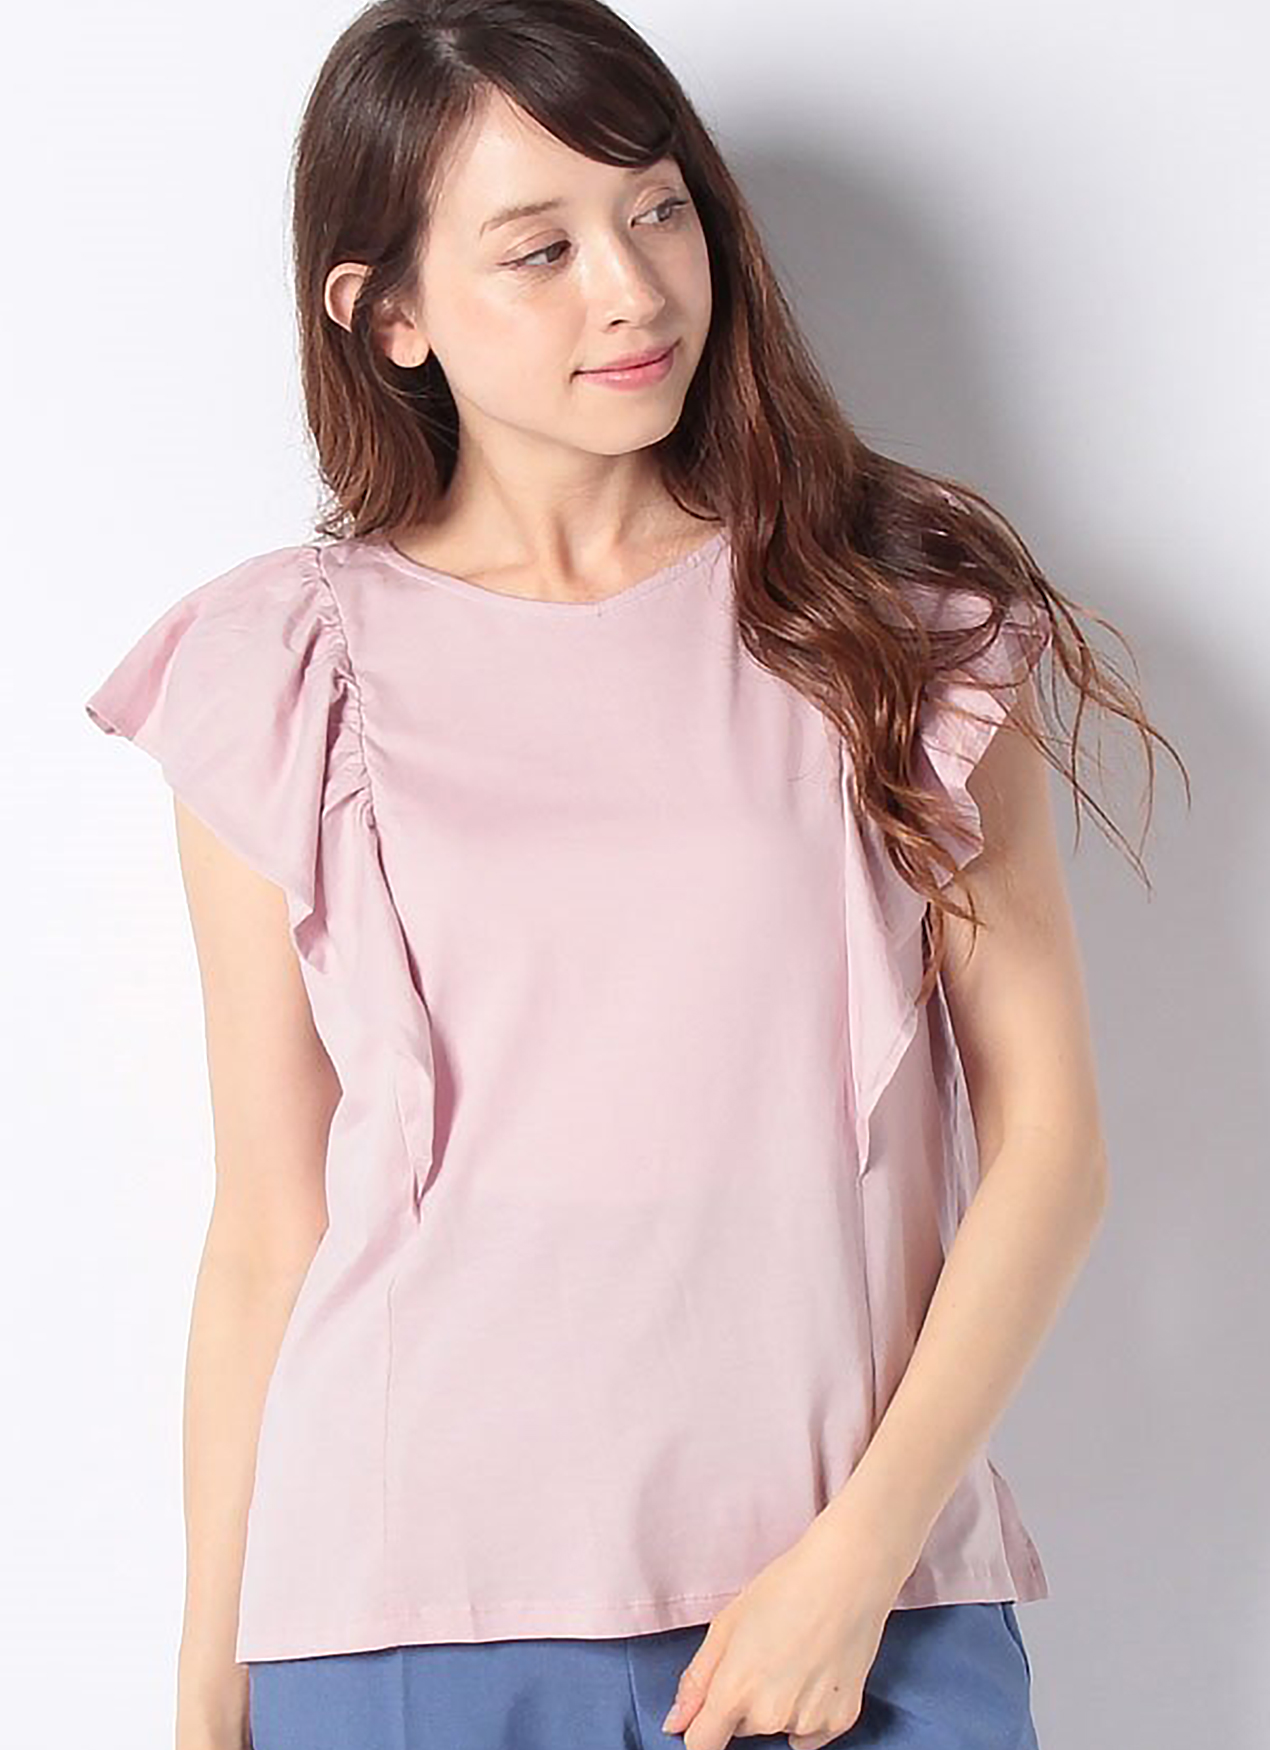 Earth, Music & Ecology Saori Top - Light Pink